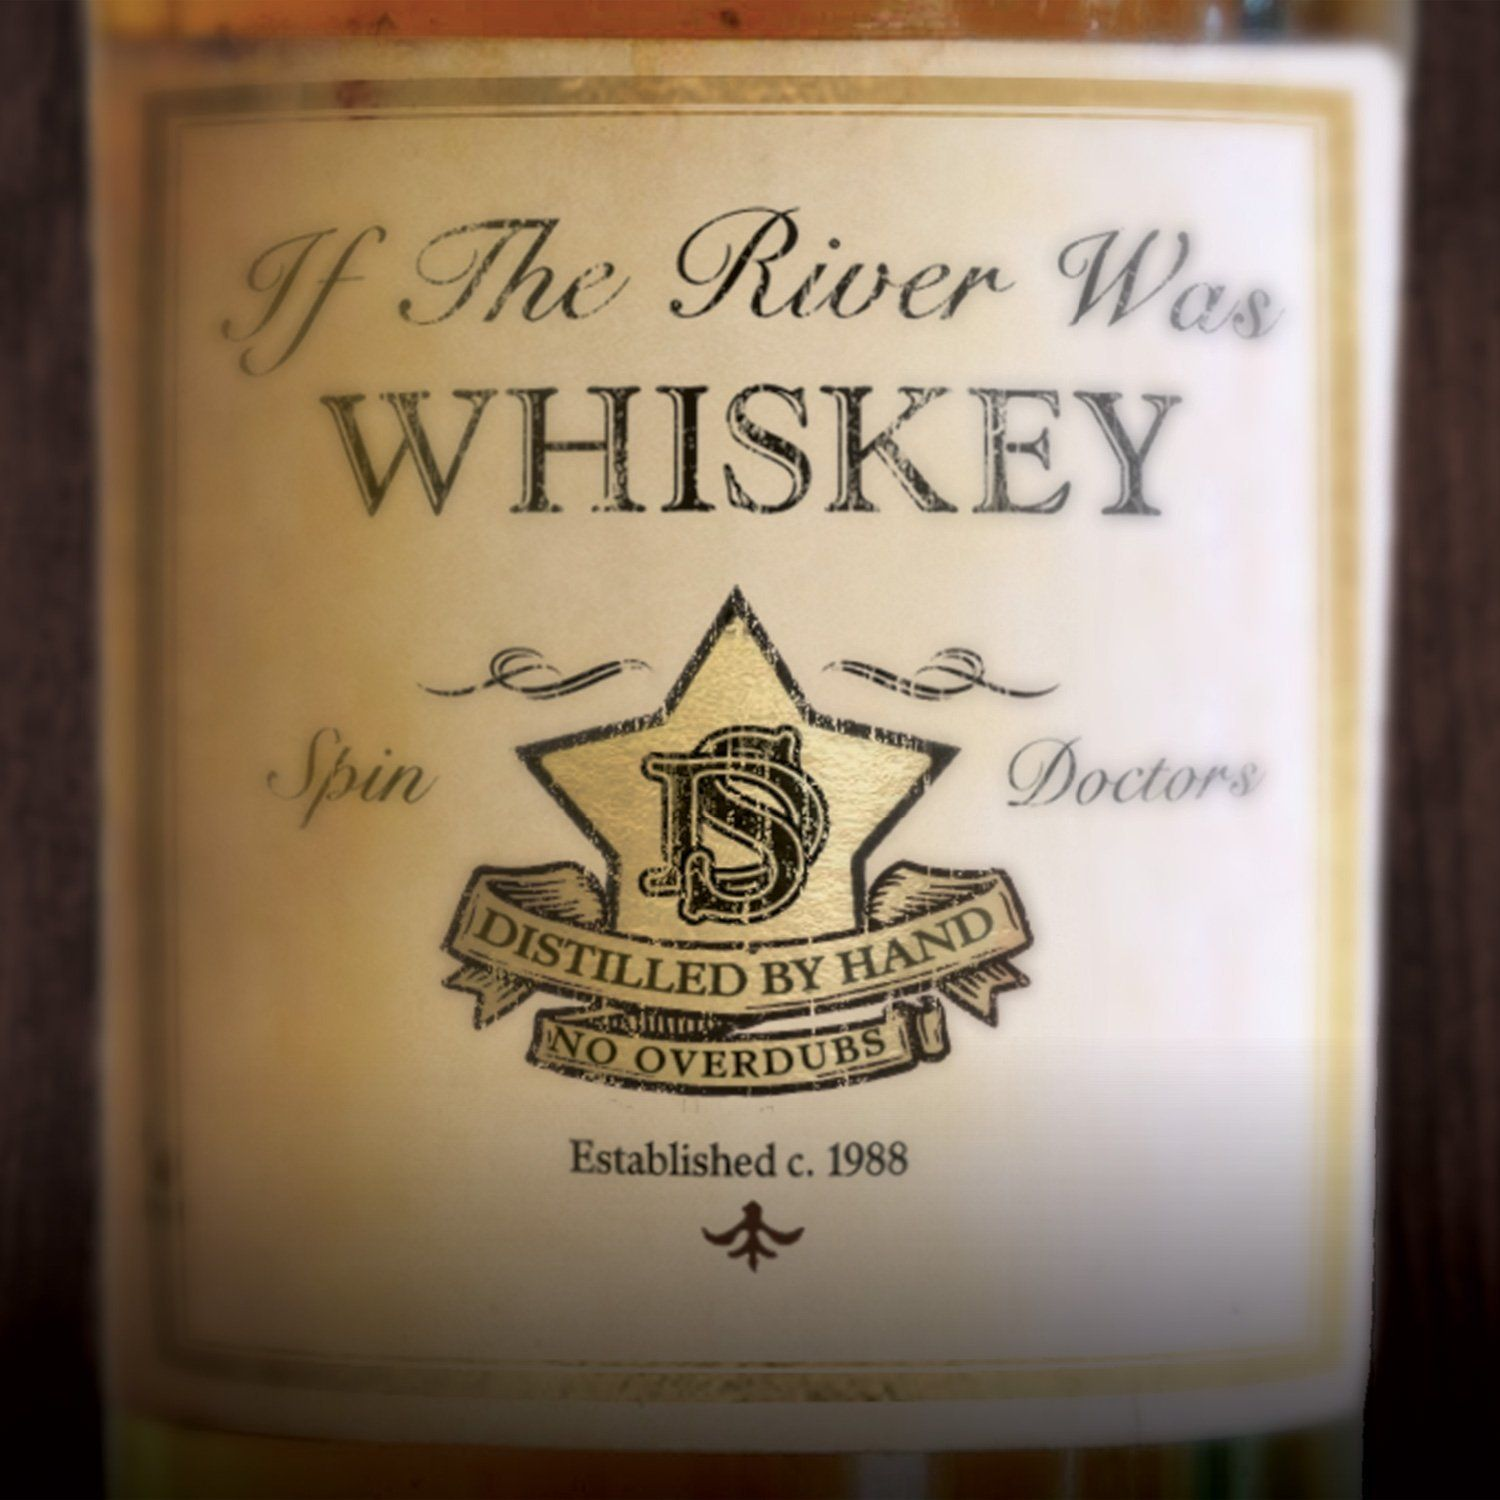 If-The-River-Was-Whiskey-cover